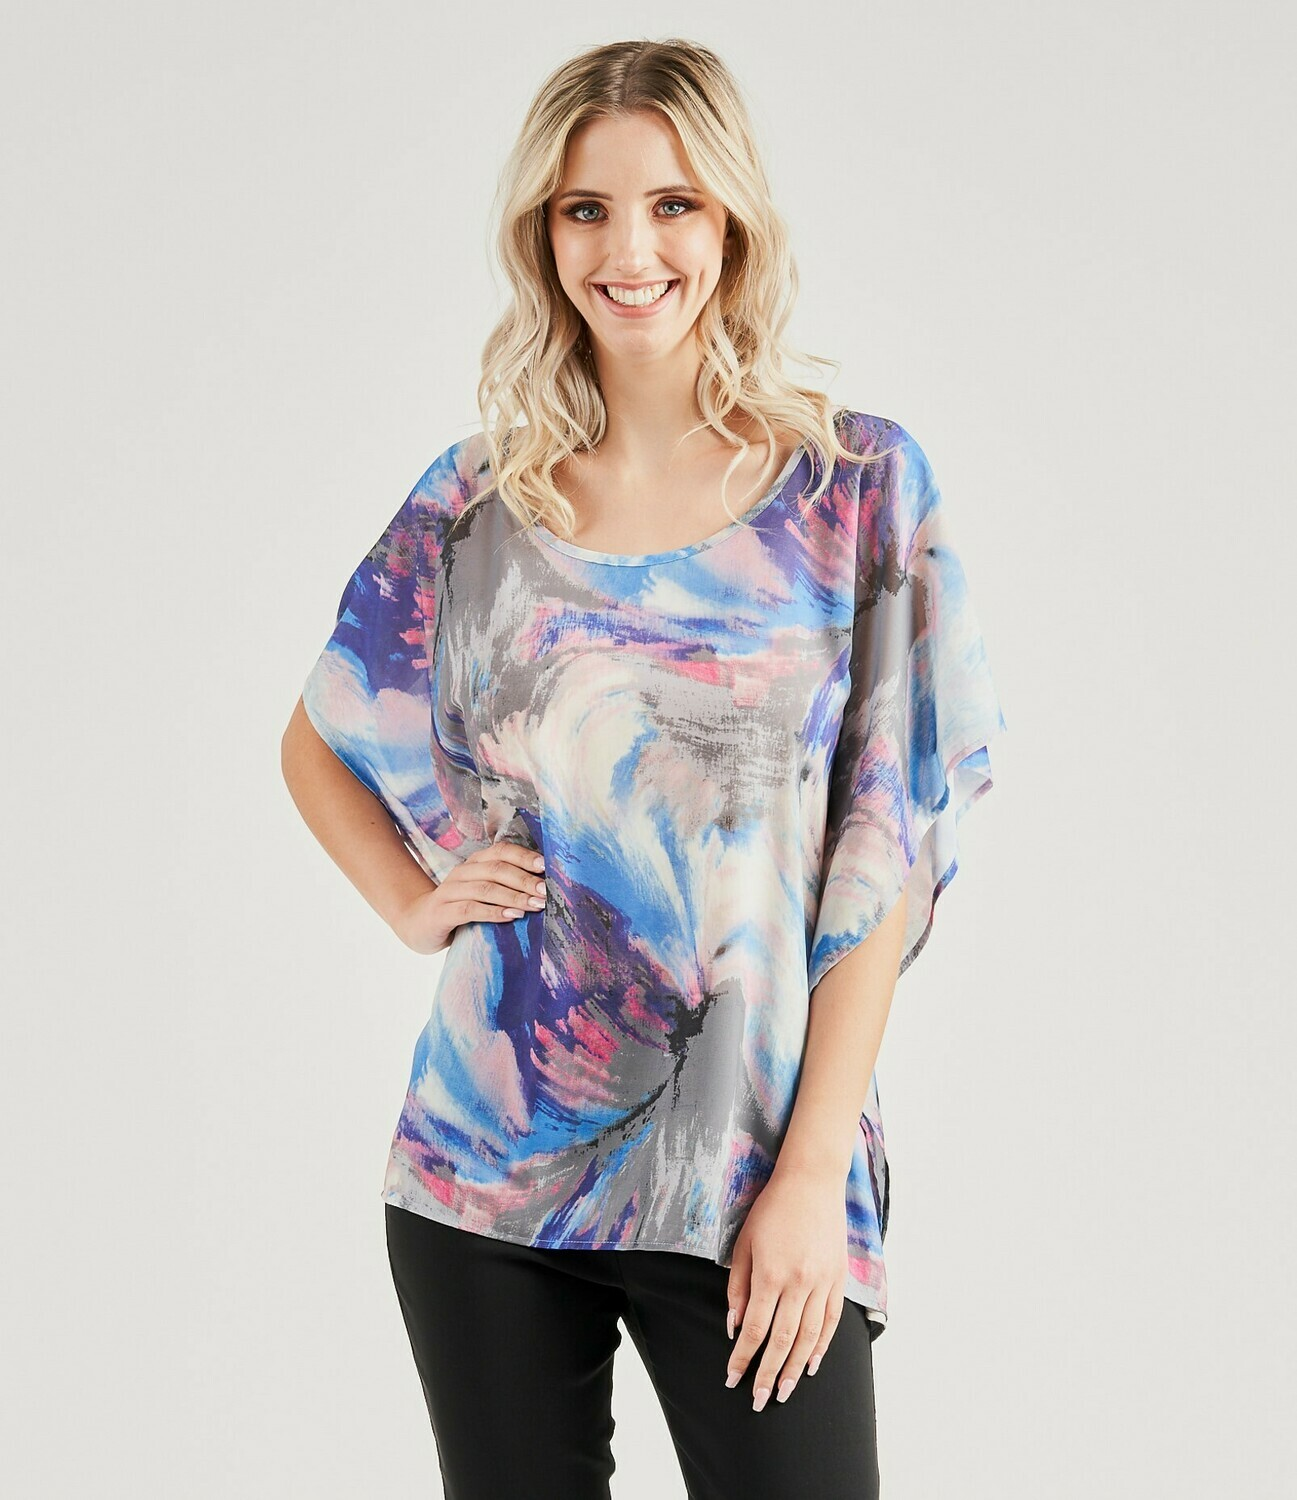 Multi-Coloured Soft Draping Top